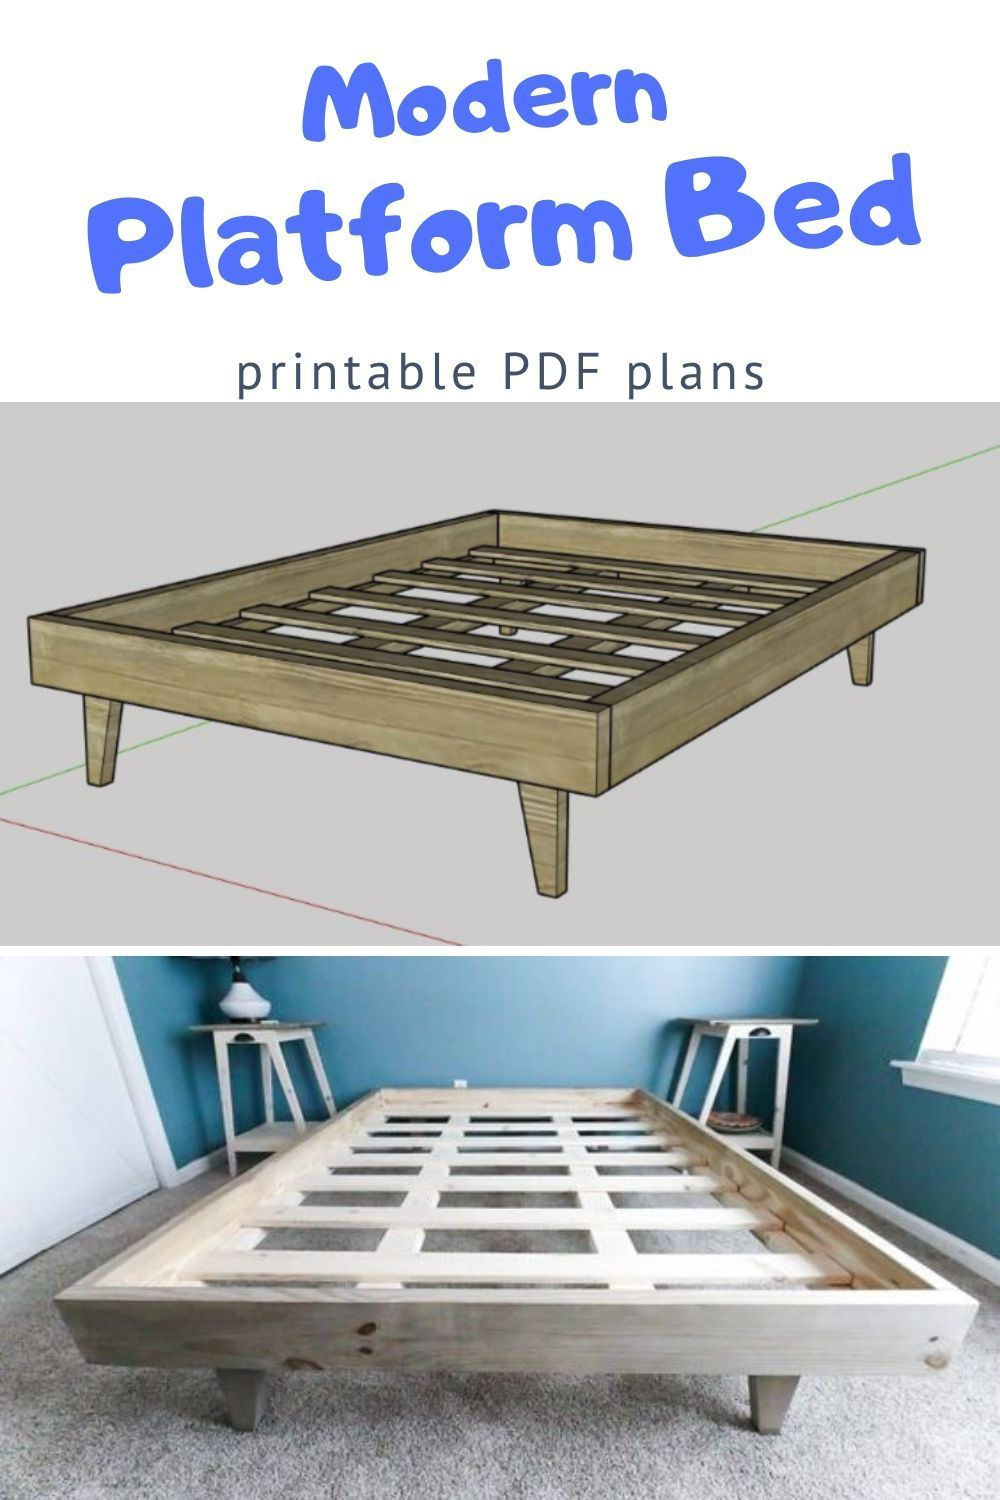 How To Build A Platform Bed For 50 Free Pdf Plans In 2020 Build A Platform Bed Diy Platform Bed Modern Platform Bed